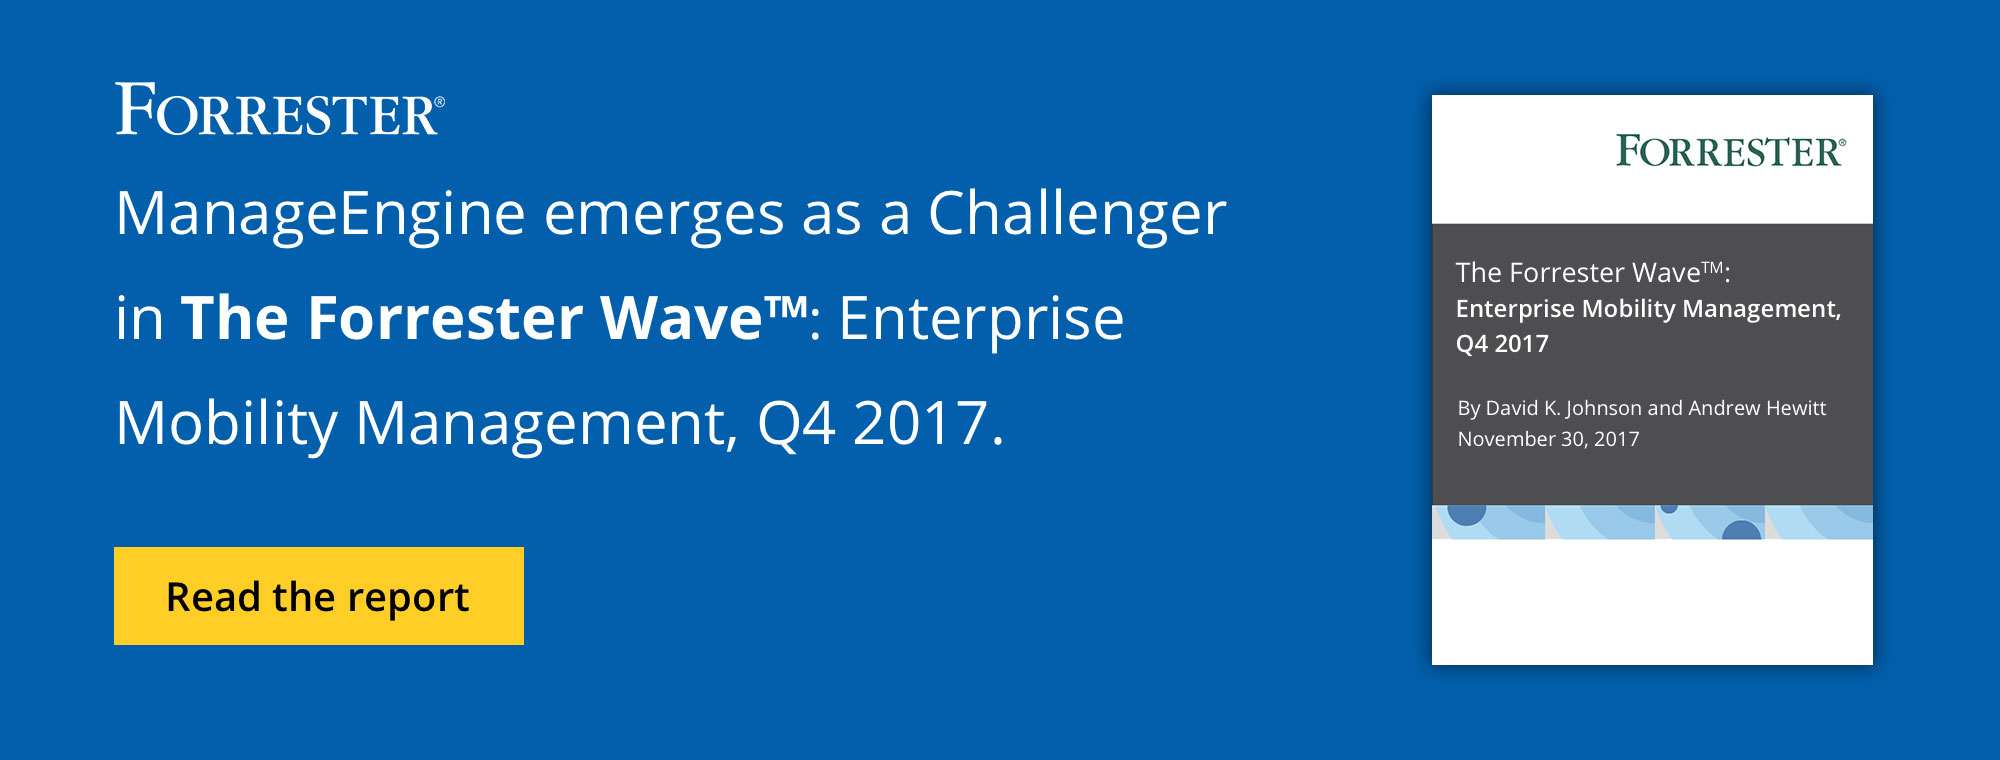 ManageEngine emerges as a Challenger 